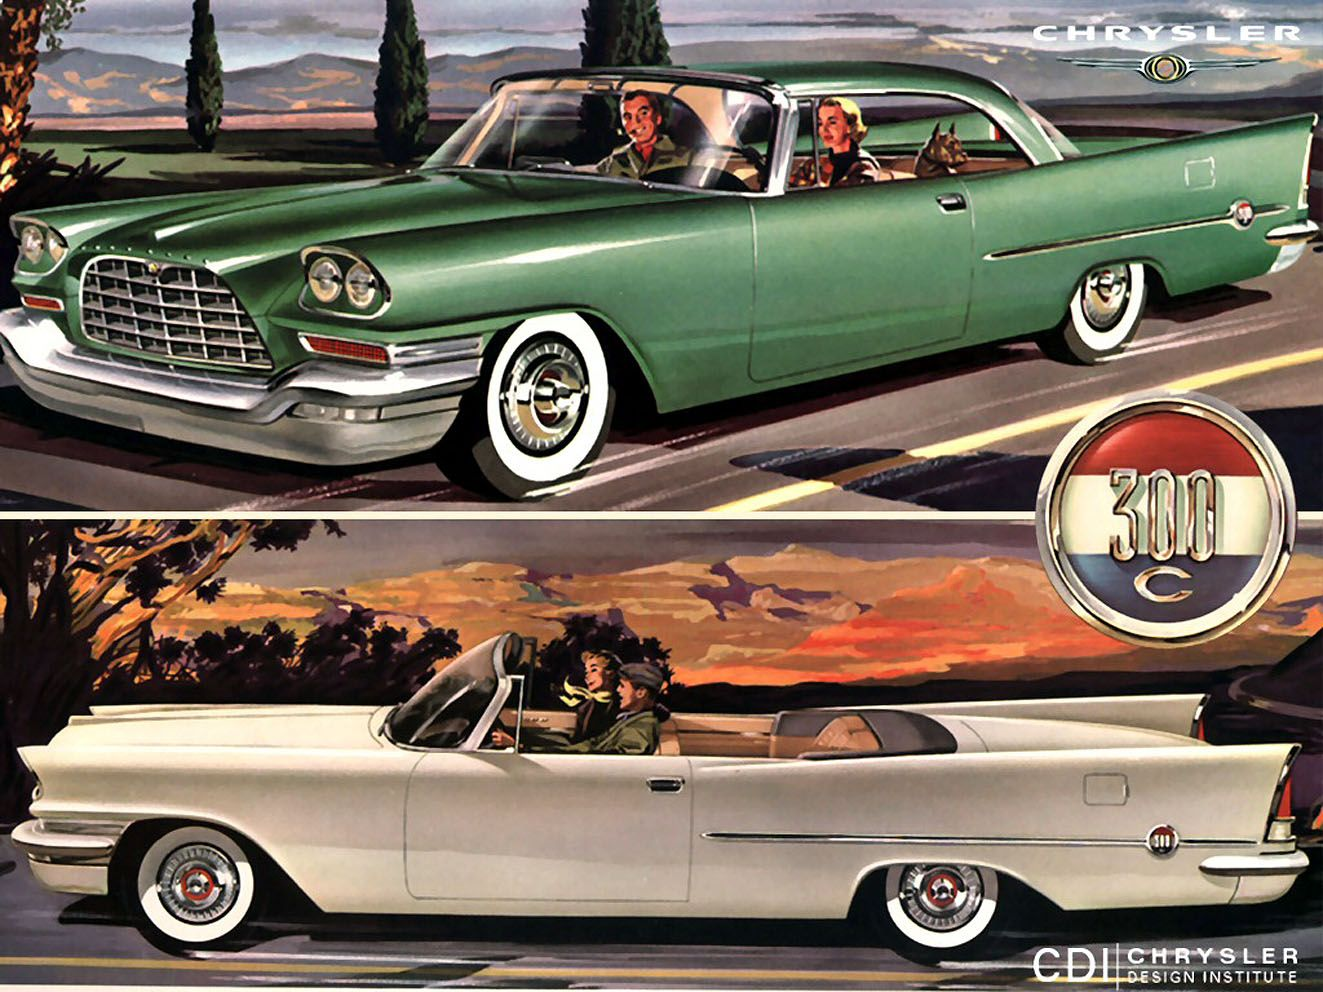 1956 Chrysler 300 C 2Door Hardtop and Convertible  James